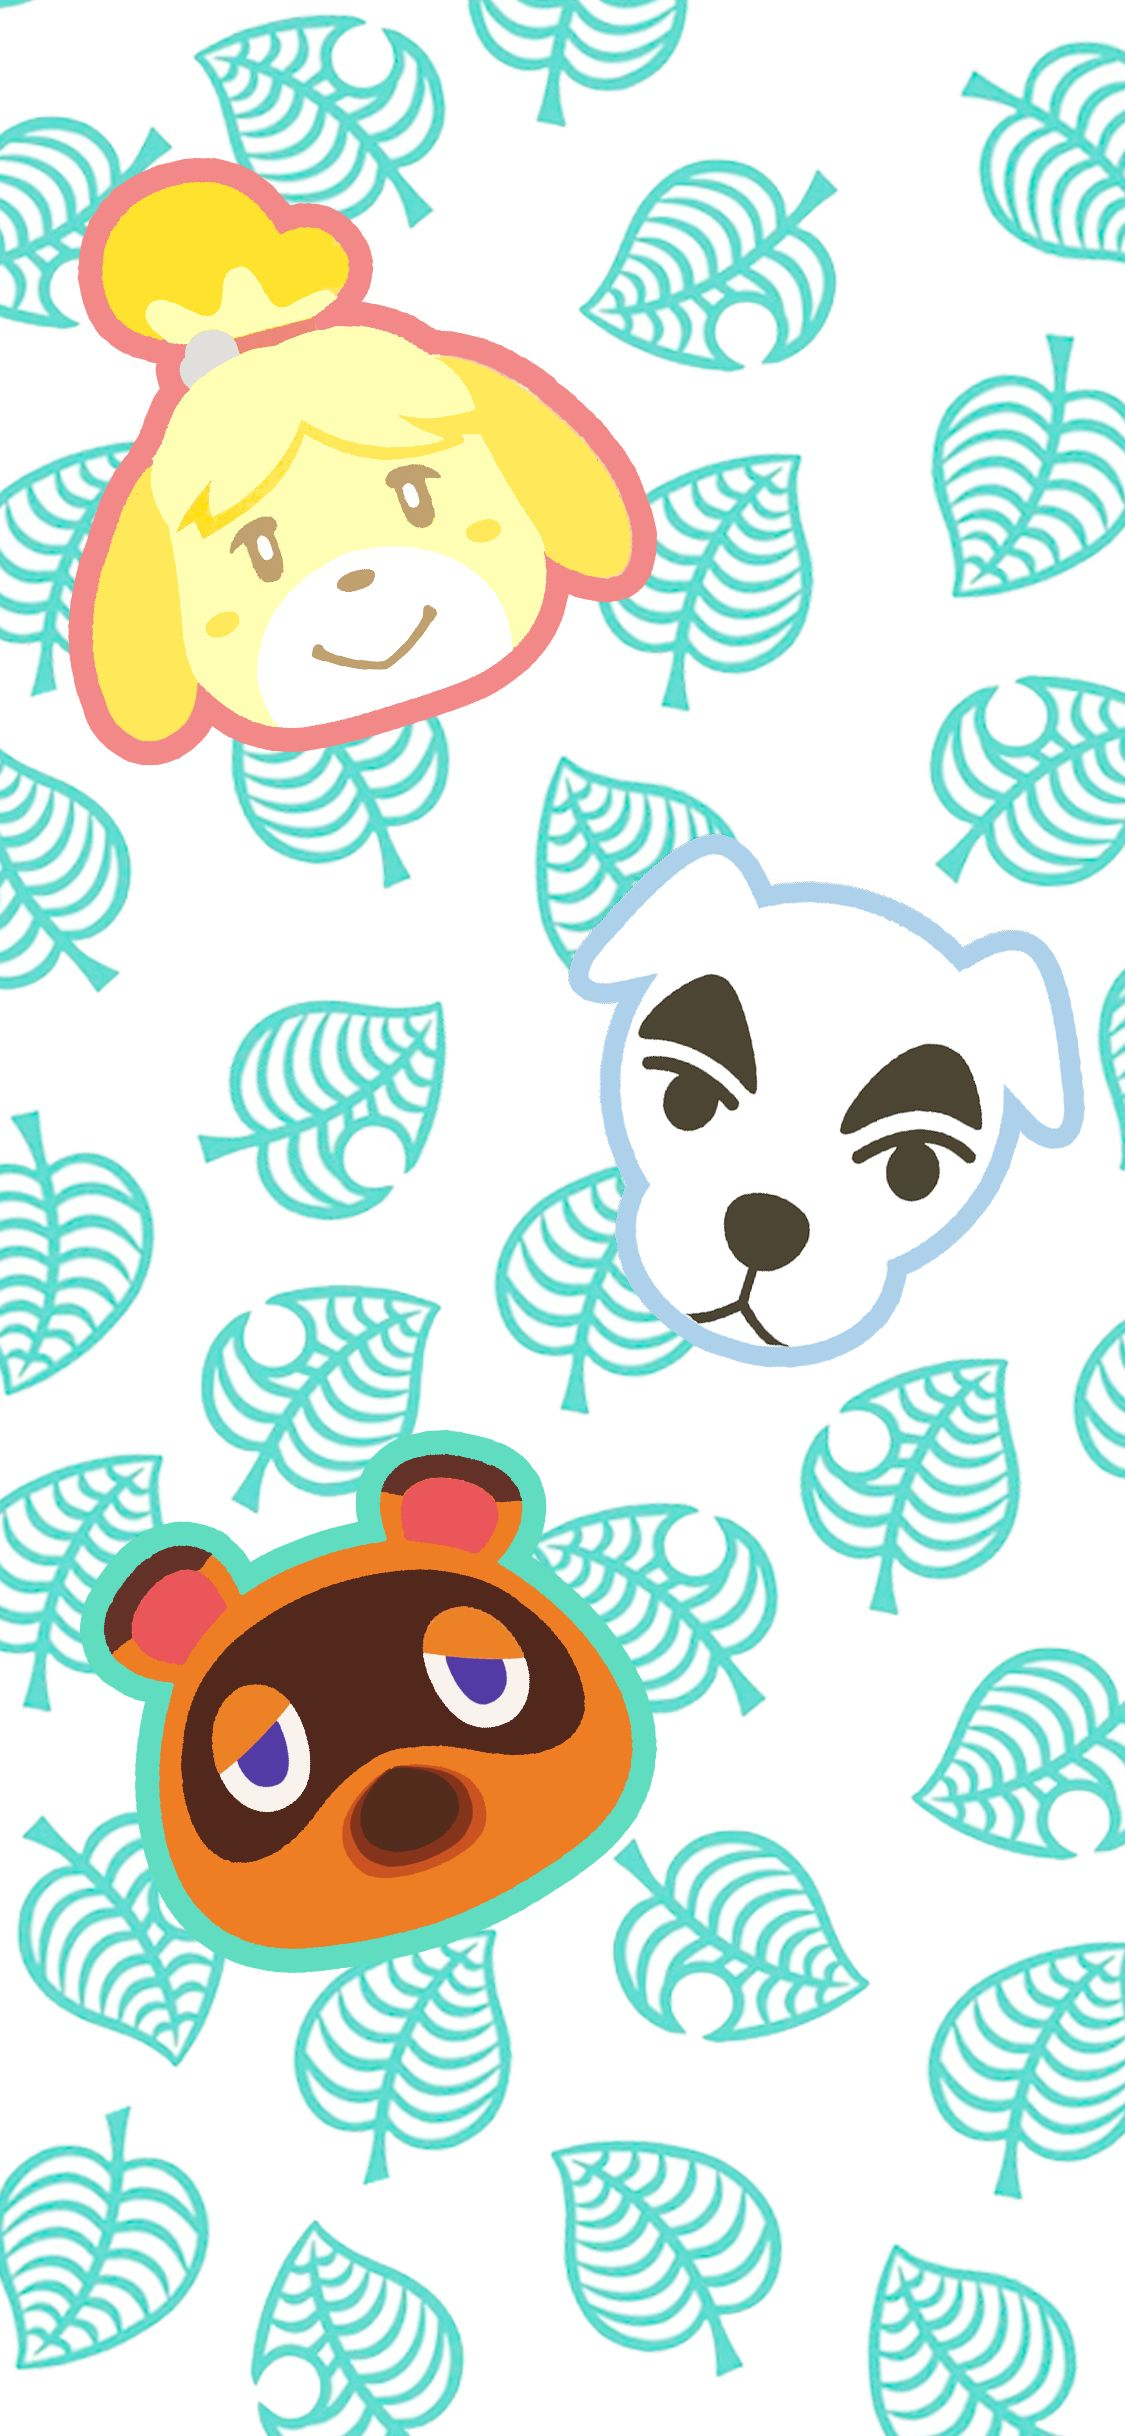 Iphone Animal Crossing Wallpaper Ideas - HOW TO IN PDF